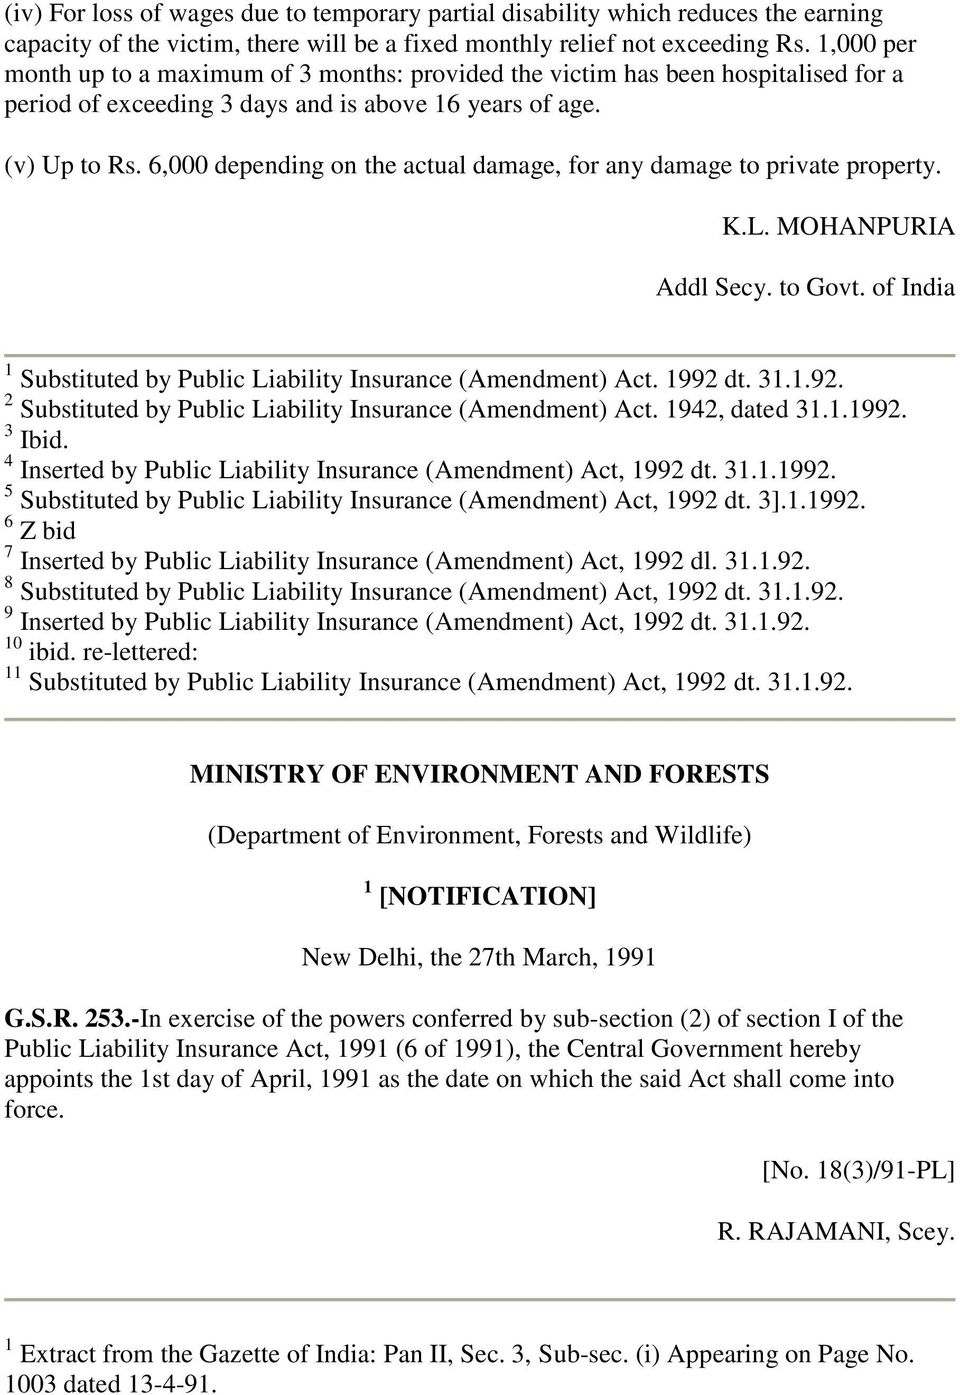 6,000 depending on the actual damage, for any damage to private property. K.L. MOHANPURIA Addl Secy. to Govt. of India 1 Substituted by Public Liability Insurance (Amendment) Act. 1992